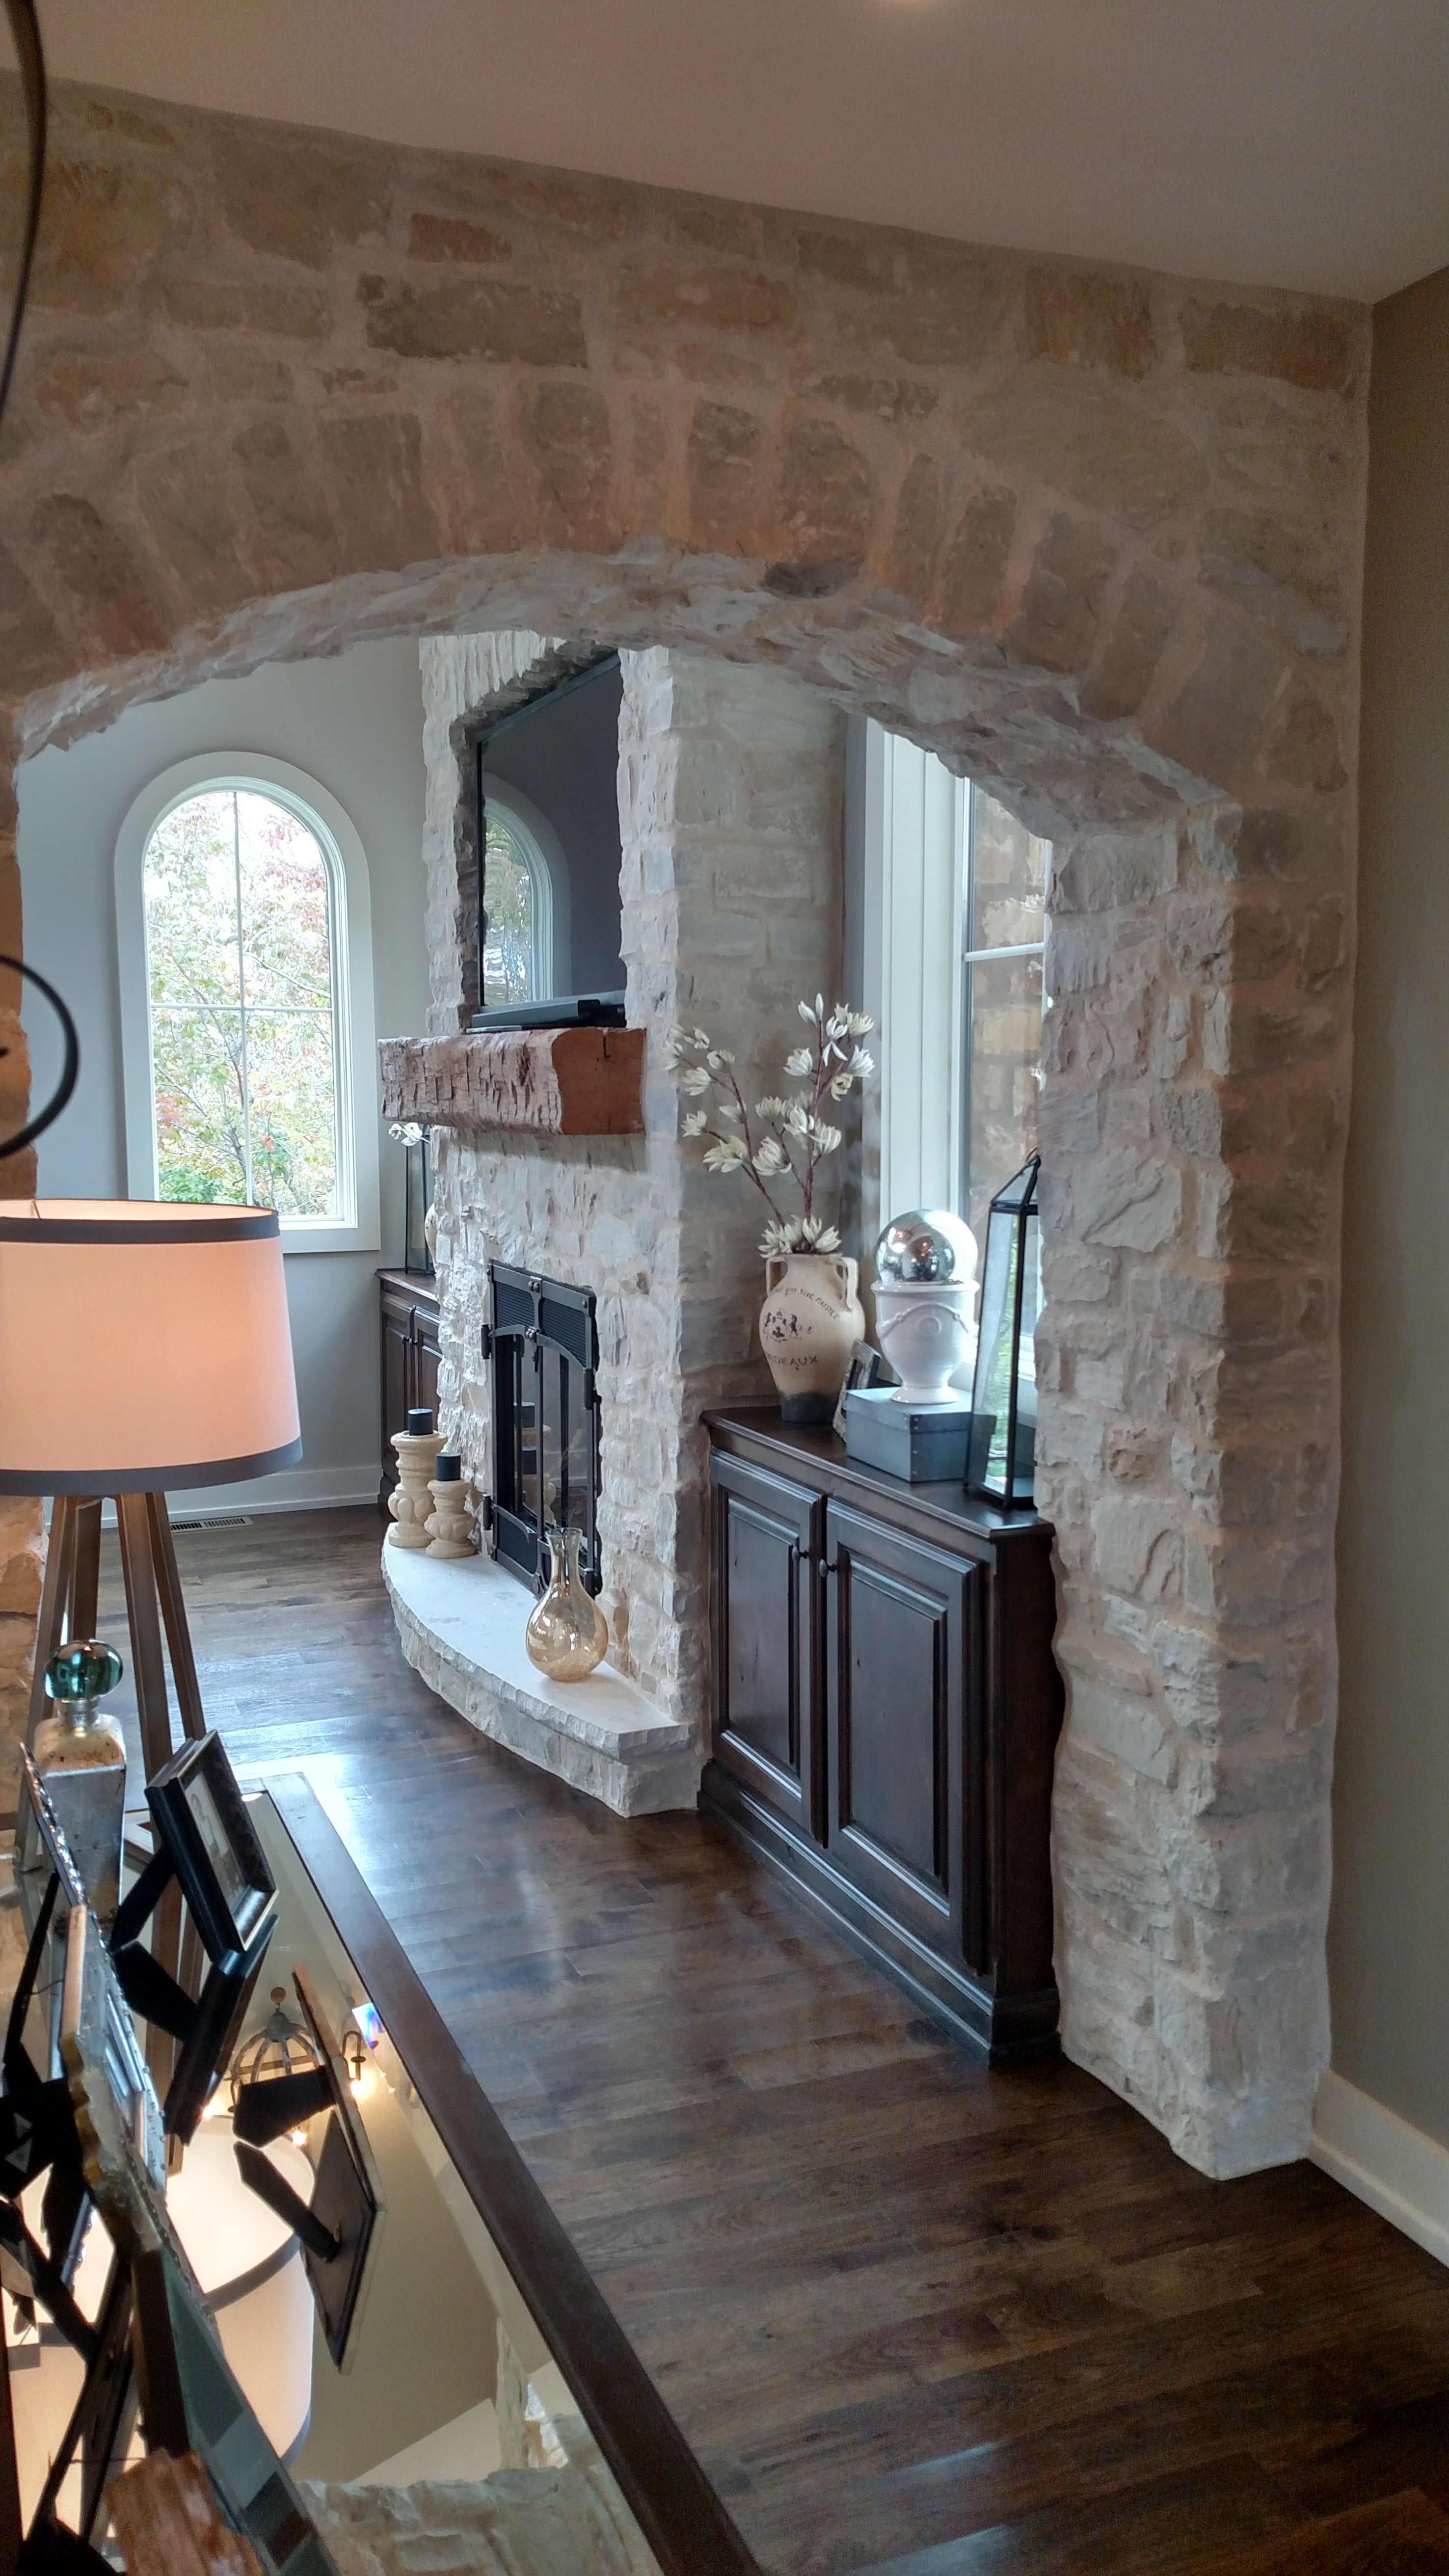 Brick Stoop Home Design Ideas Pictures Remodel And Decor: Stone Veneer Fireplace And Archway. Profiles: Country